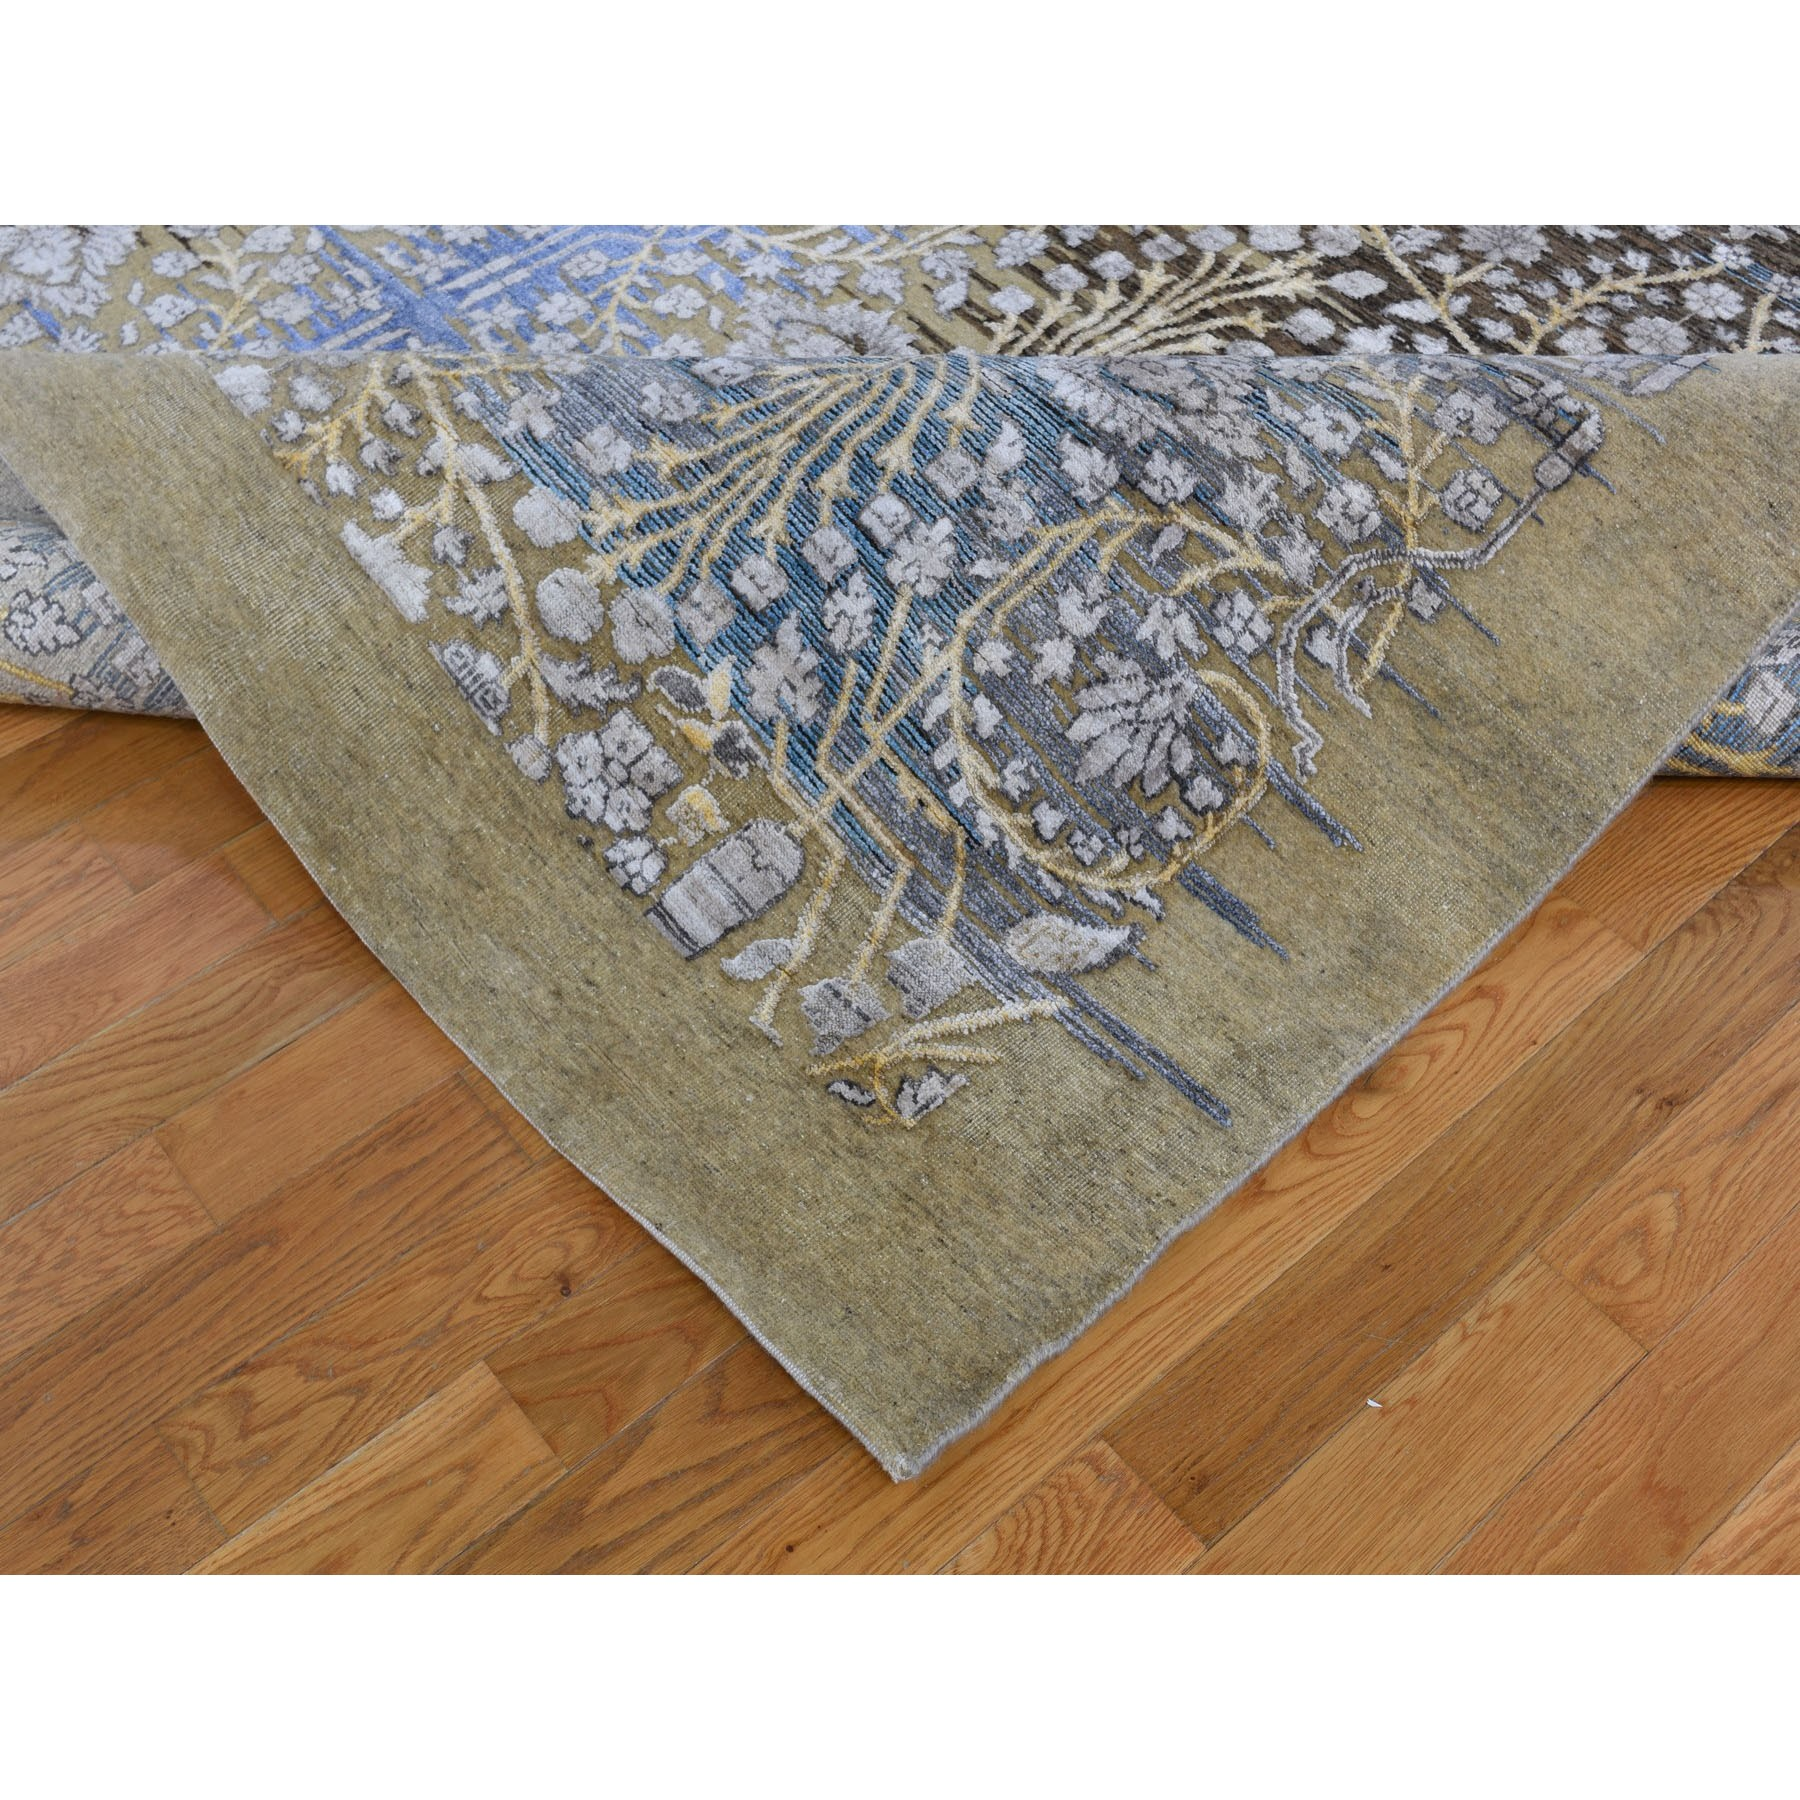 9-10 x14-2  Silk with Textured Wool Transitional Sarouk Hand-Knotted Oriental Rug